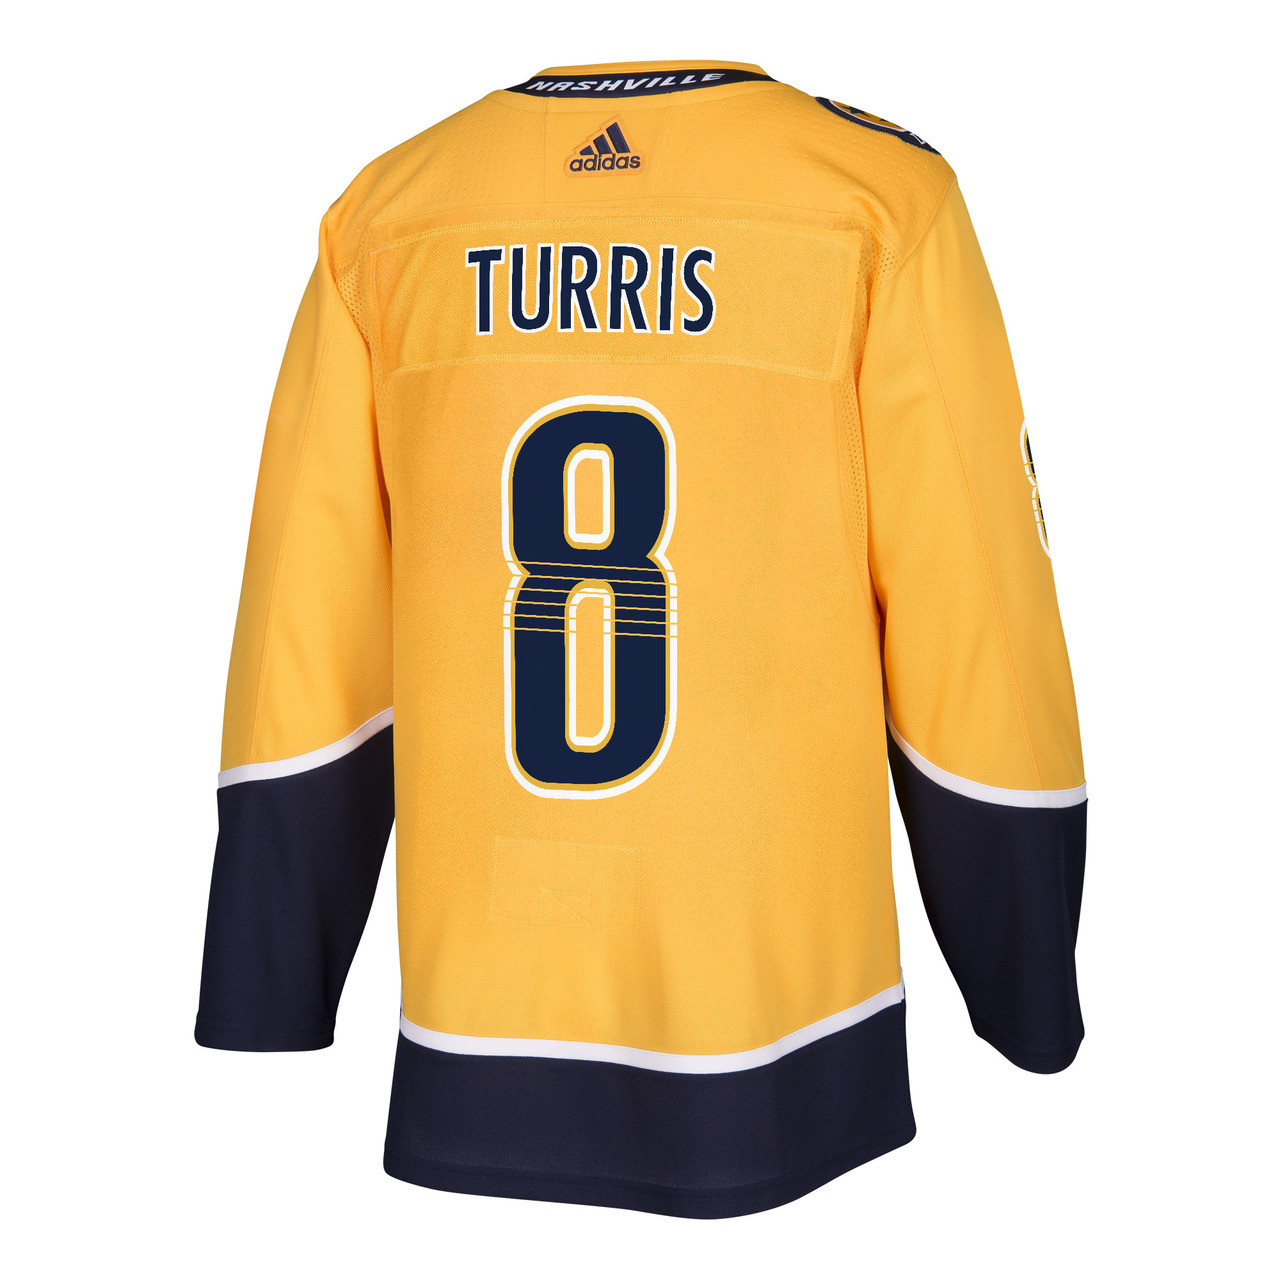 check out 13402 e607f Nashville Predators Adidas Authentic Kyle Turris Jersey Home/Gold